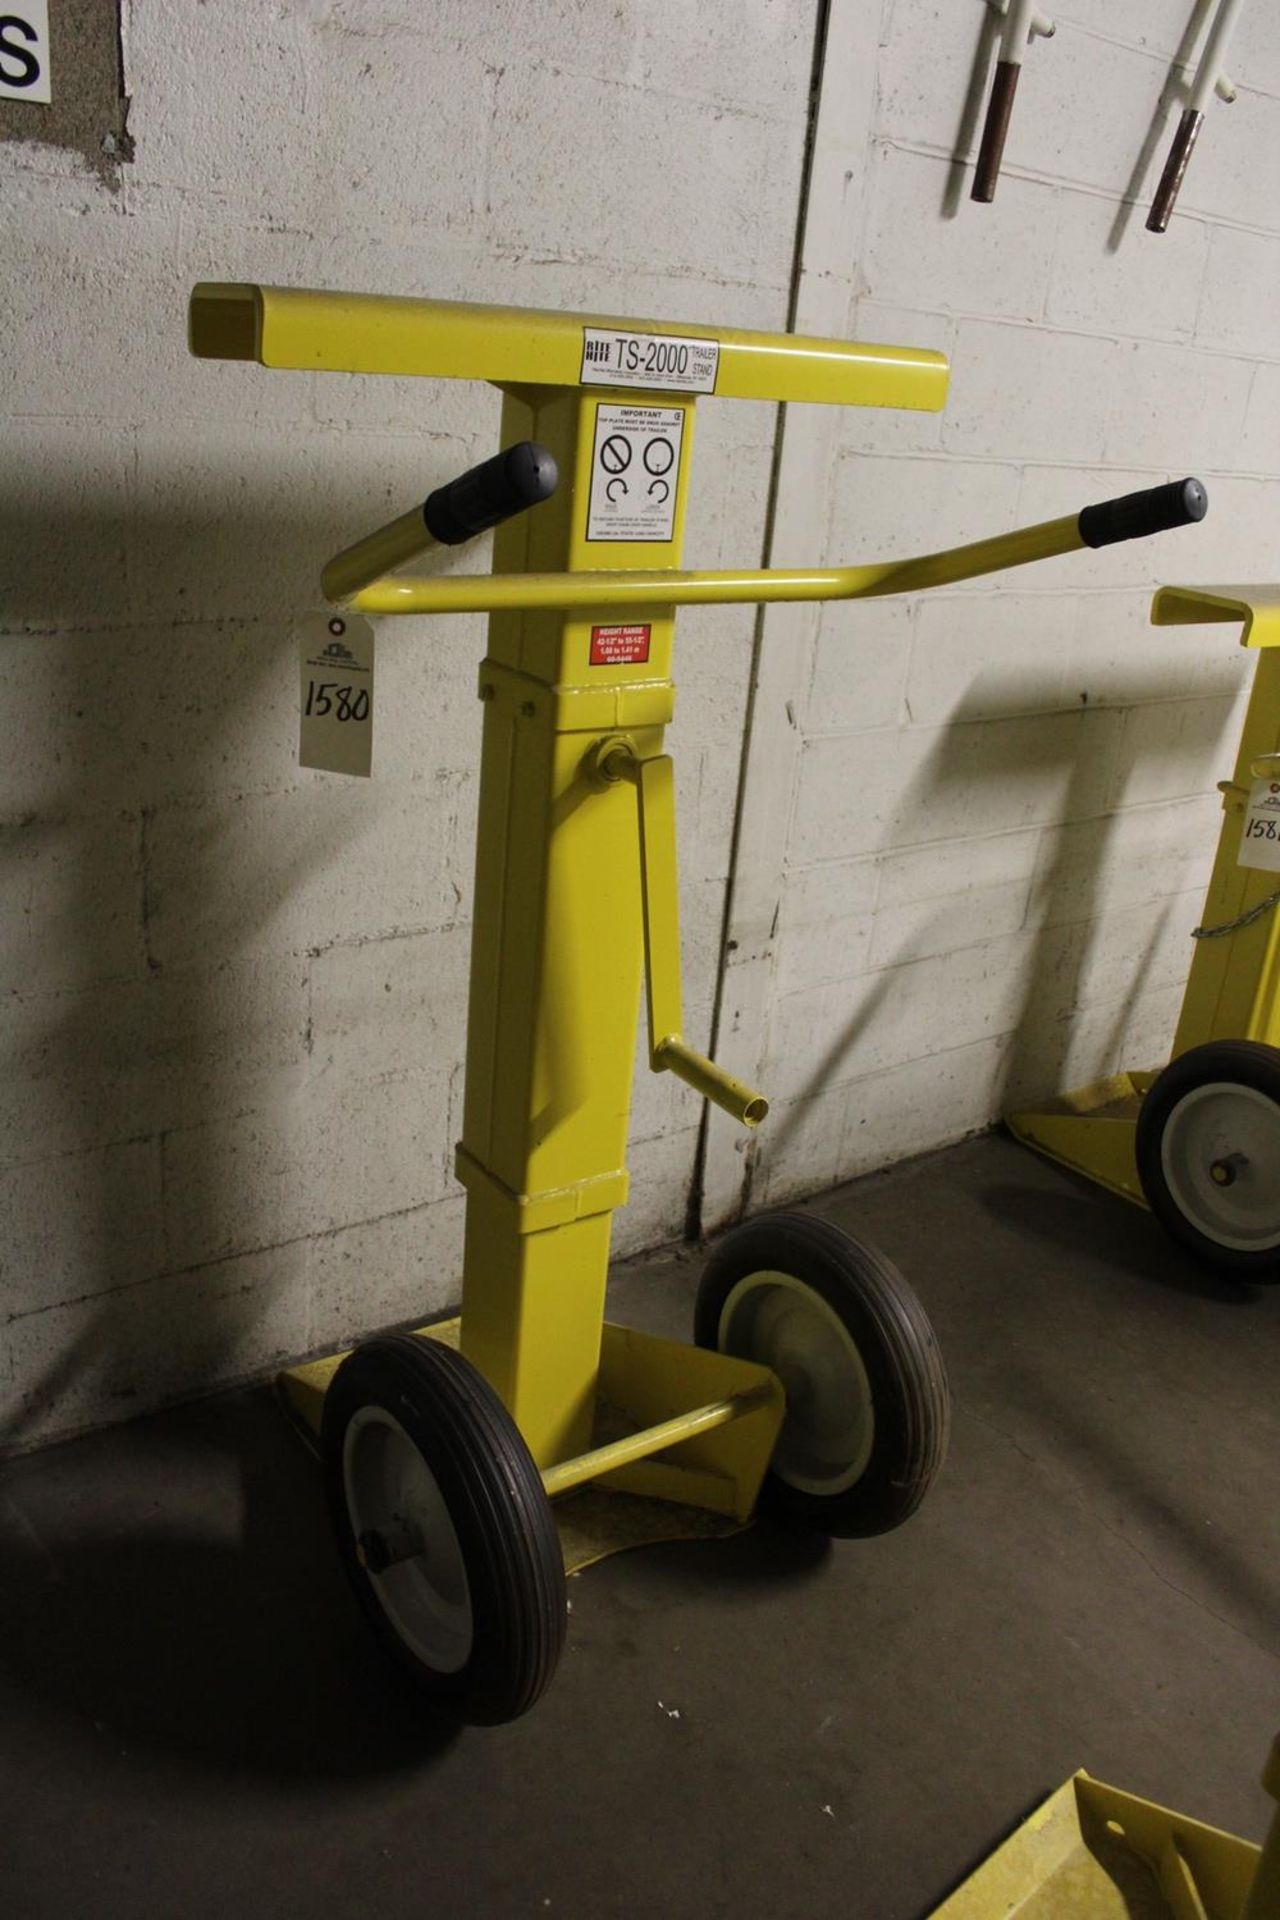 Lot 1580 - Rite Hite TS-2000 Trailer Stand - Subject to Bulk Bid Lot 15 | Rig Fee: Hand Carry or Contact Rigger